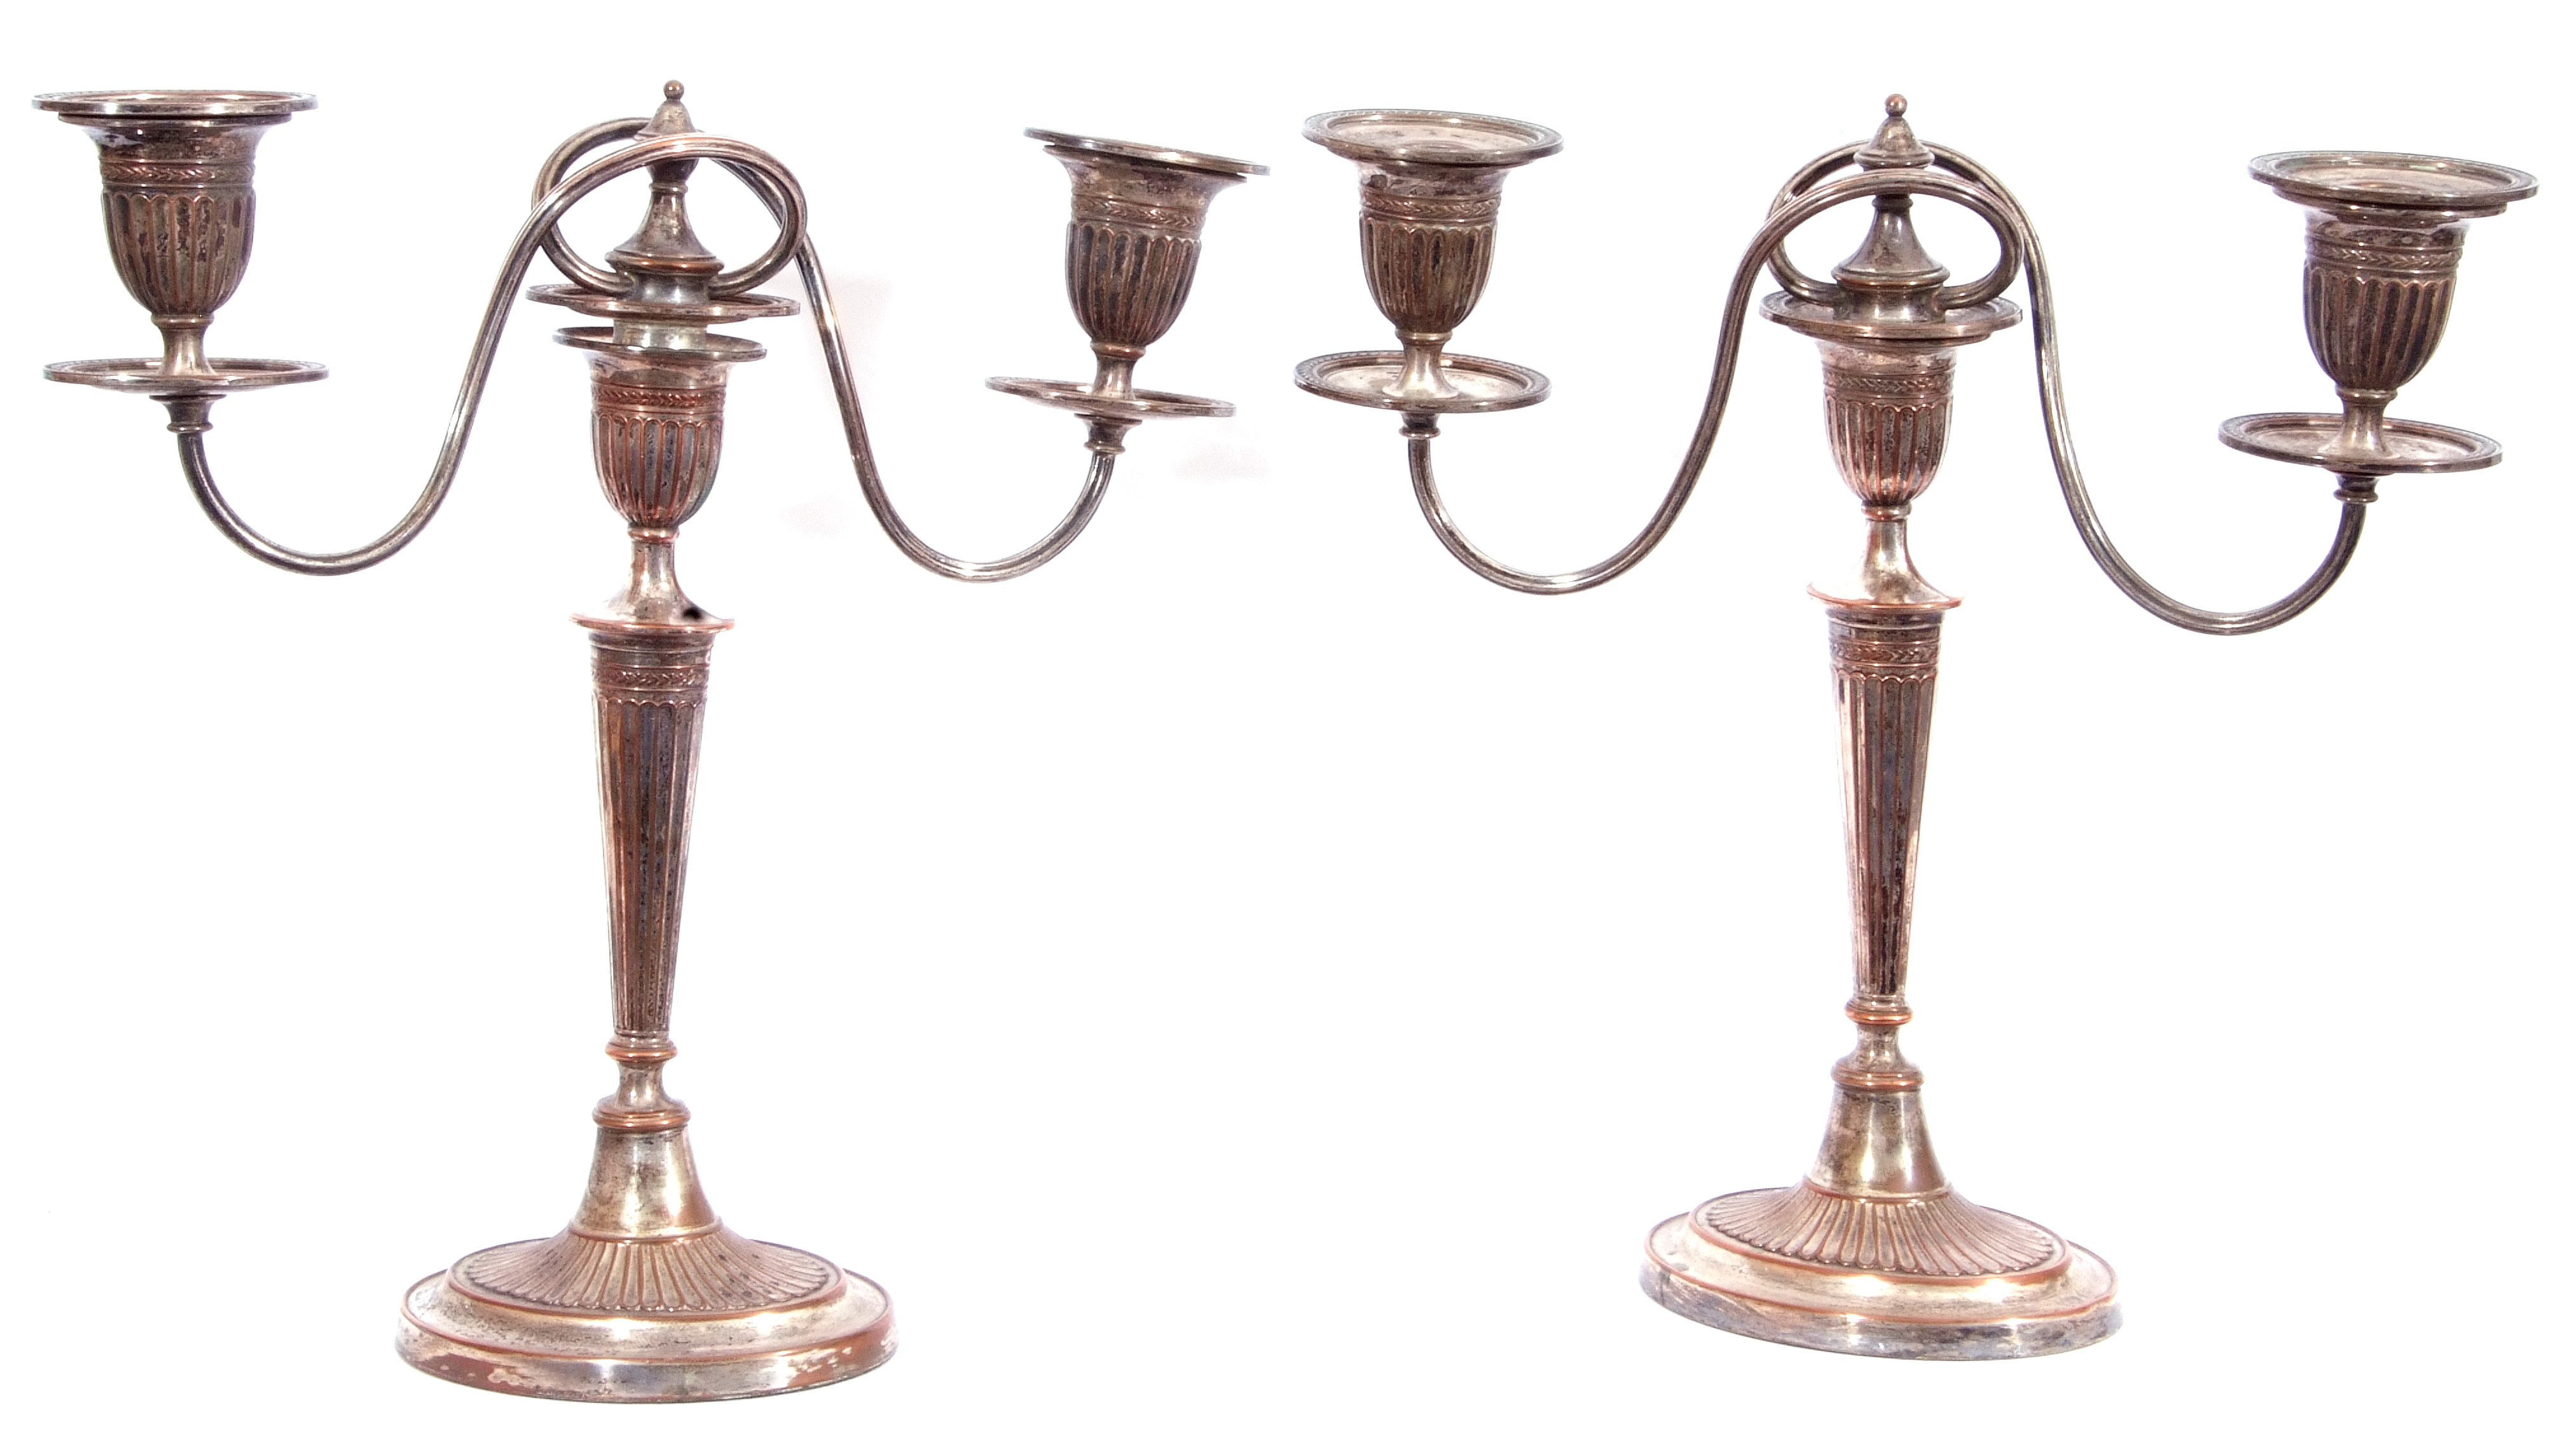 Pair of Old Sheffield Plate George IV Adam style three-light candelabra, 36cm tall (a/f) - Image 3 of 4